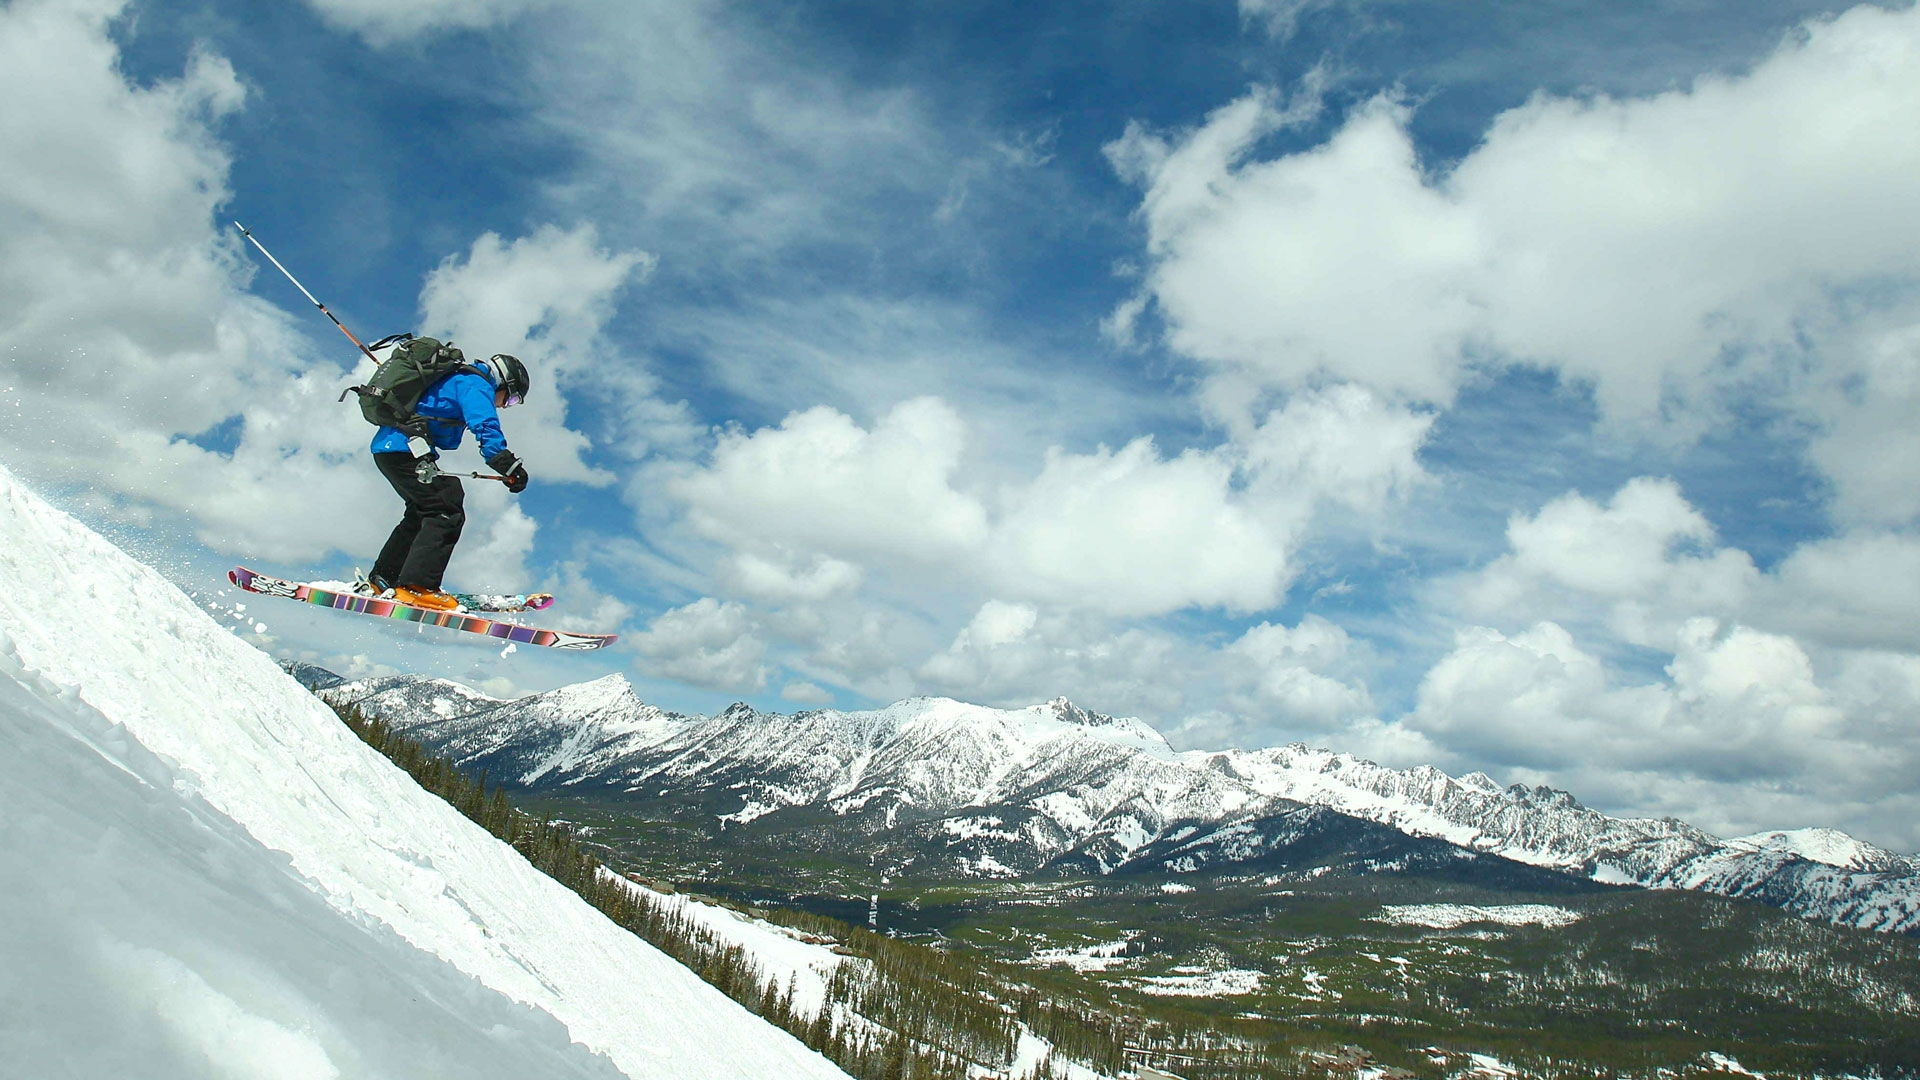 Skier at Great Divide